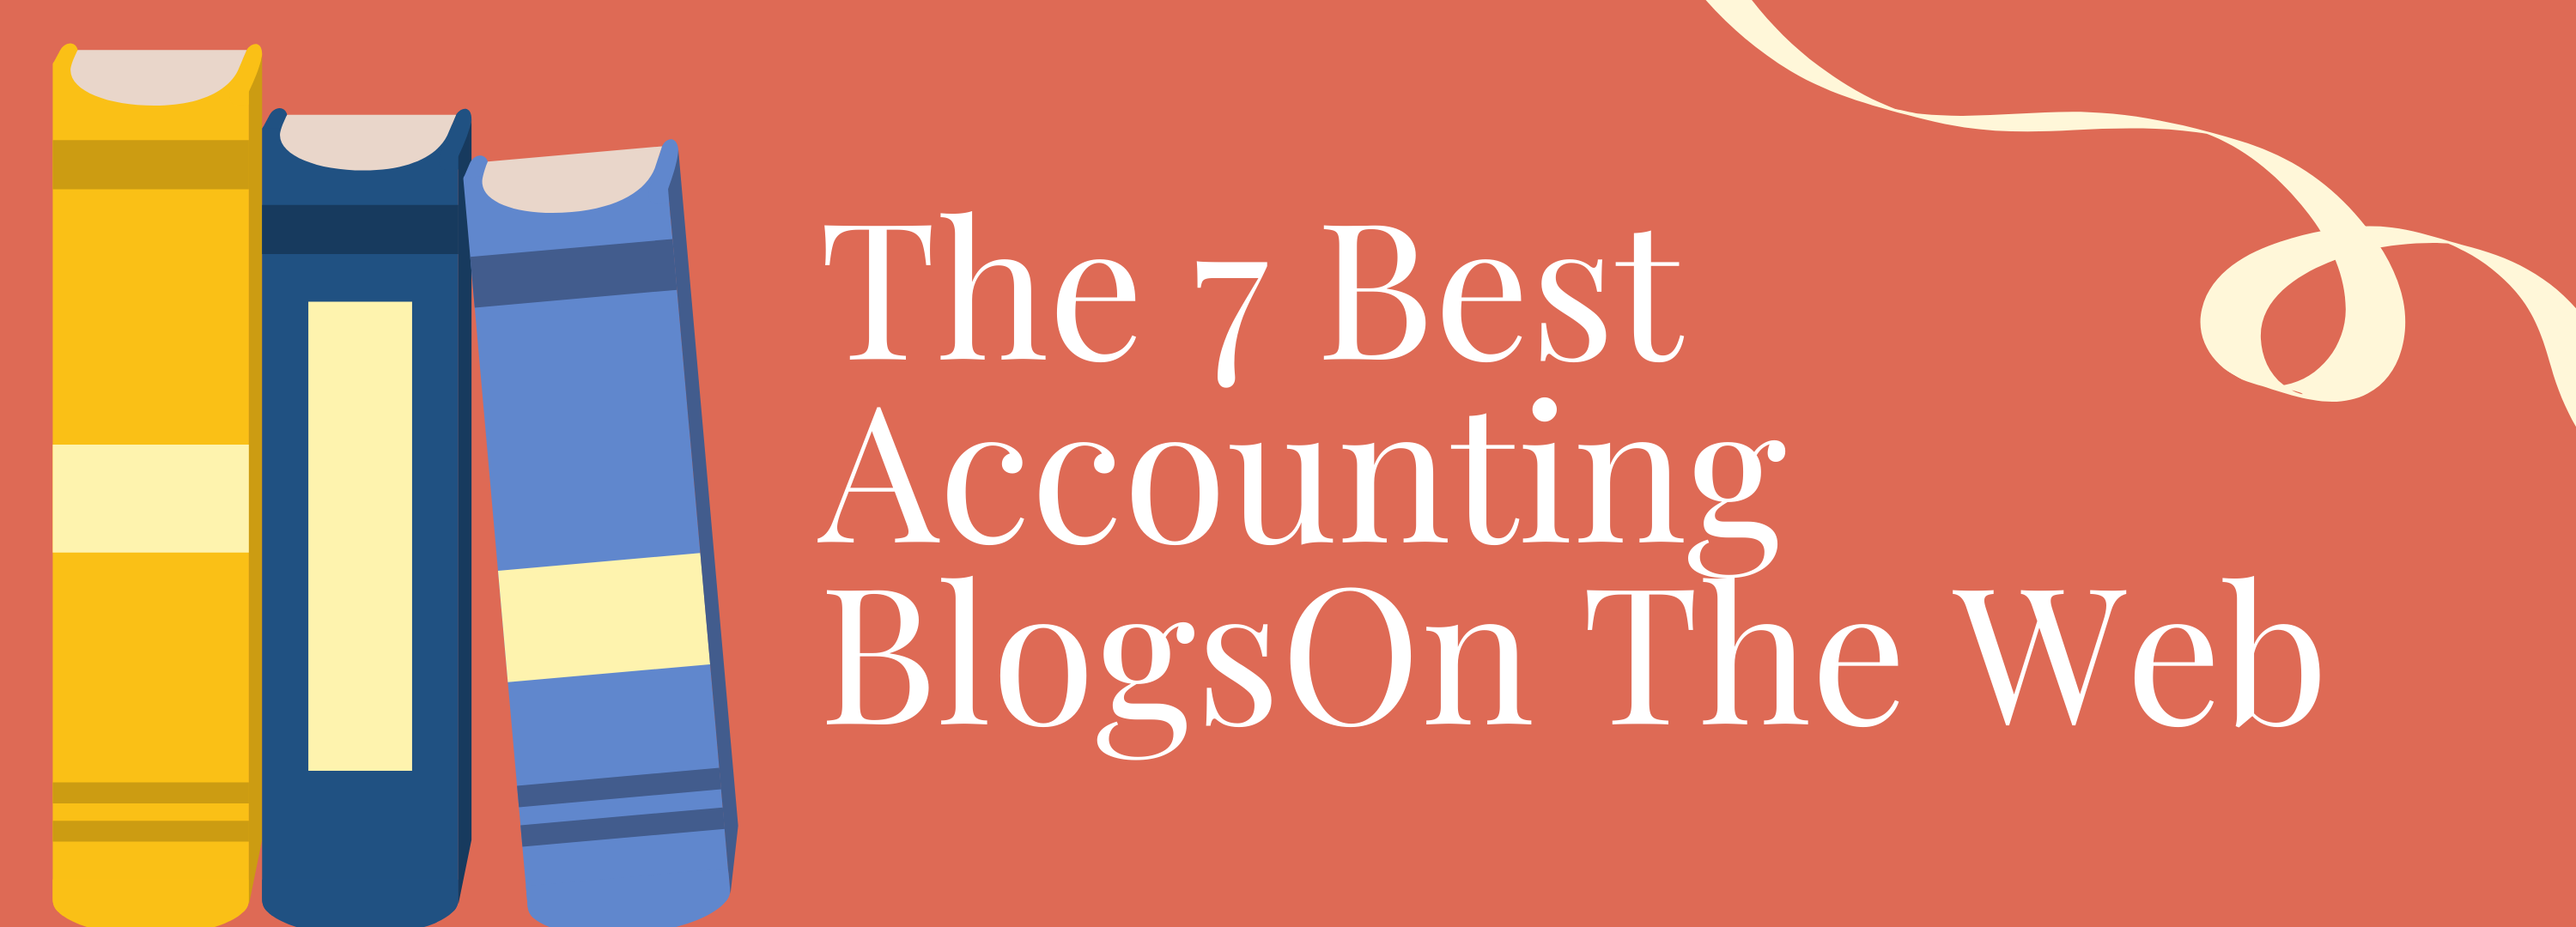 The 7 Best Accounting Blogs On The Web